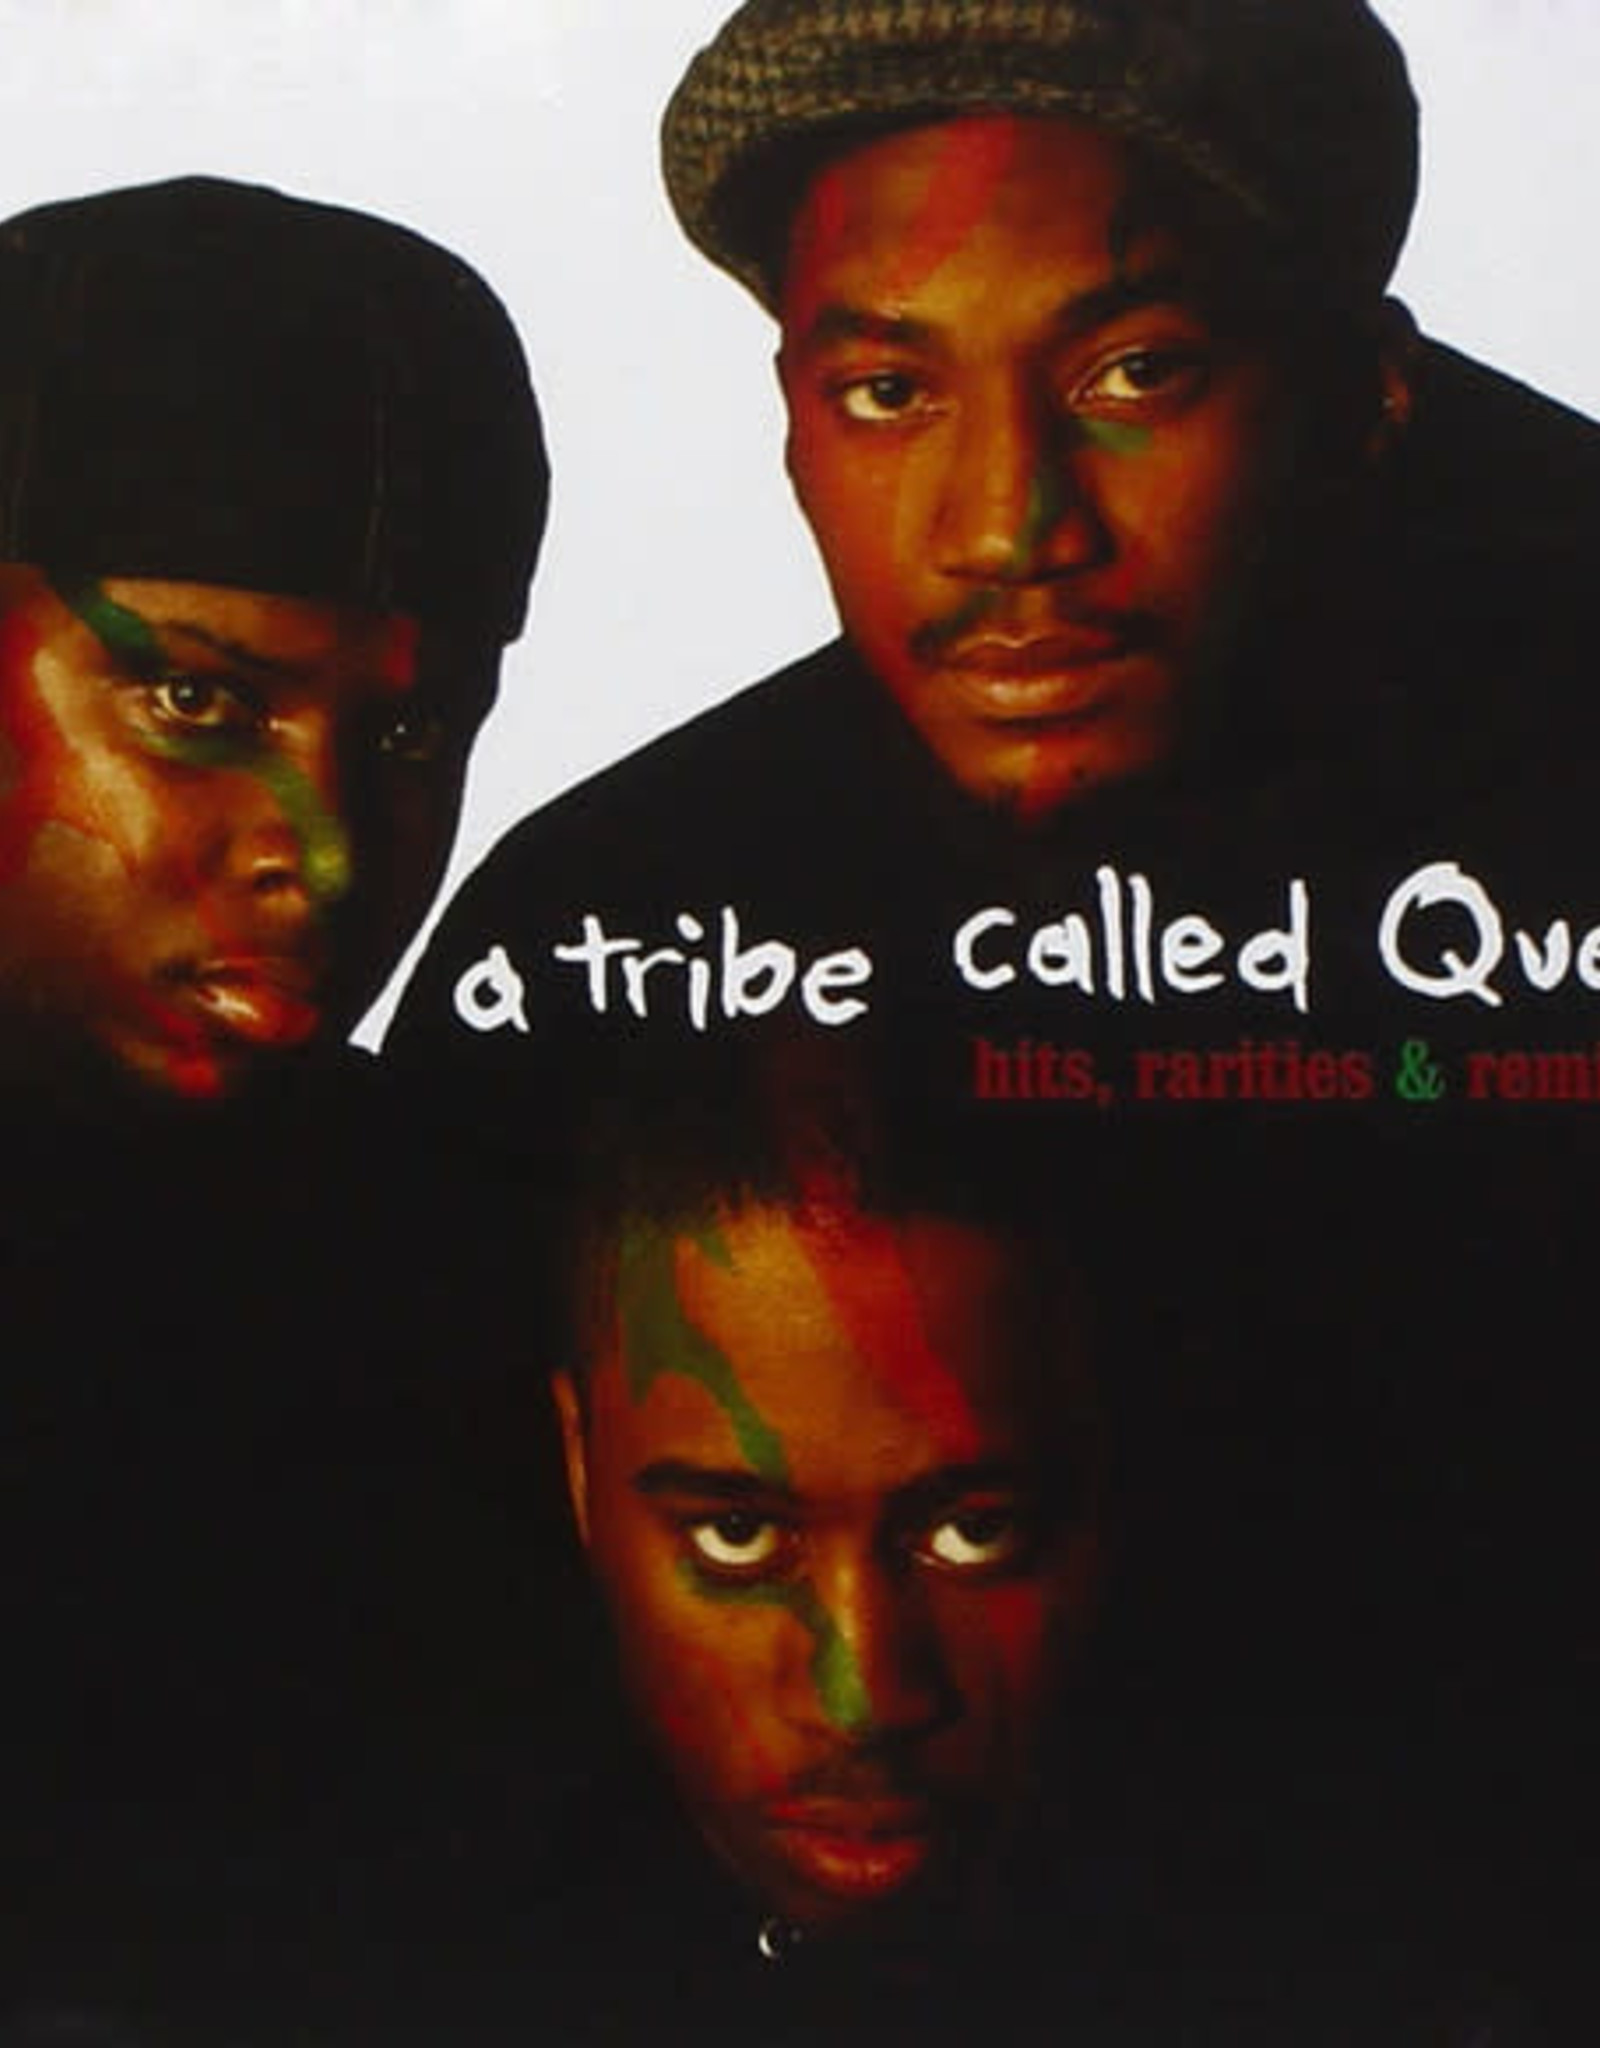 A TRIBE CALLED QUEST / HITS RARITIES AND REMIXES